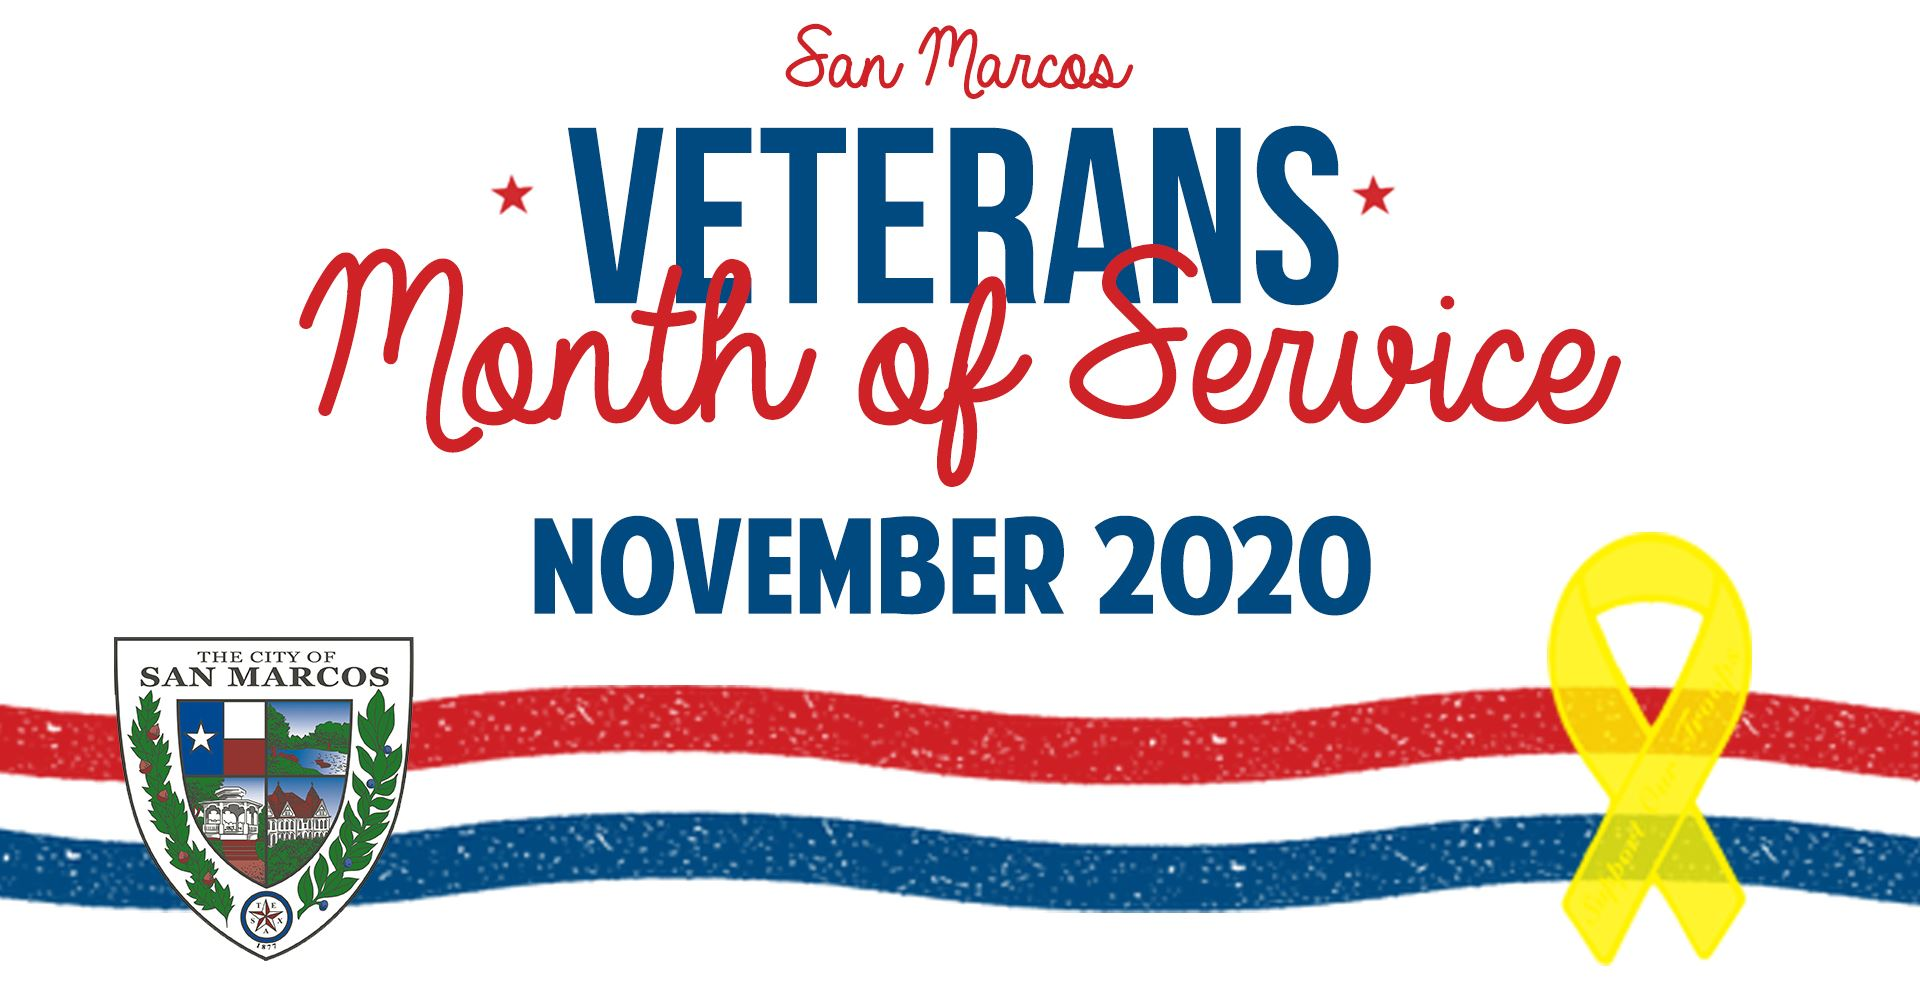 San Marcos Veterans Month of Service November 2020